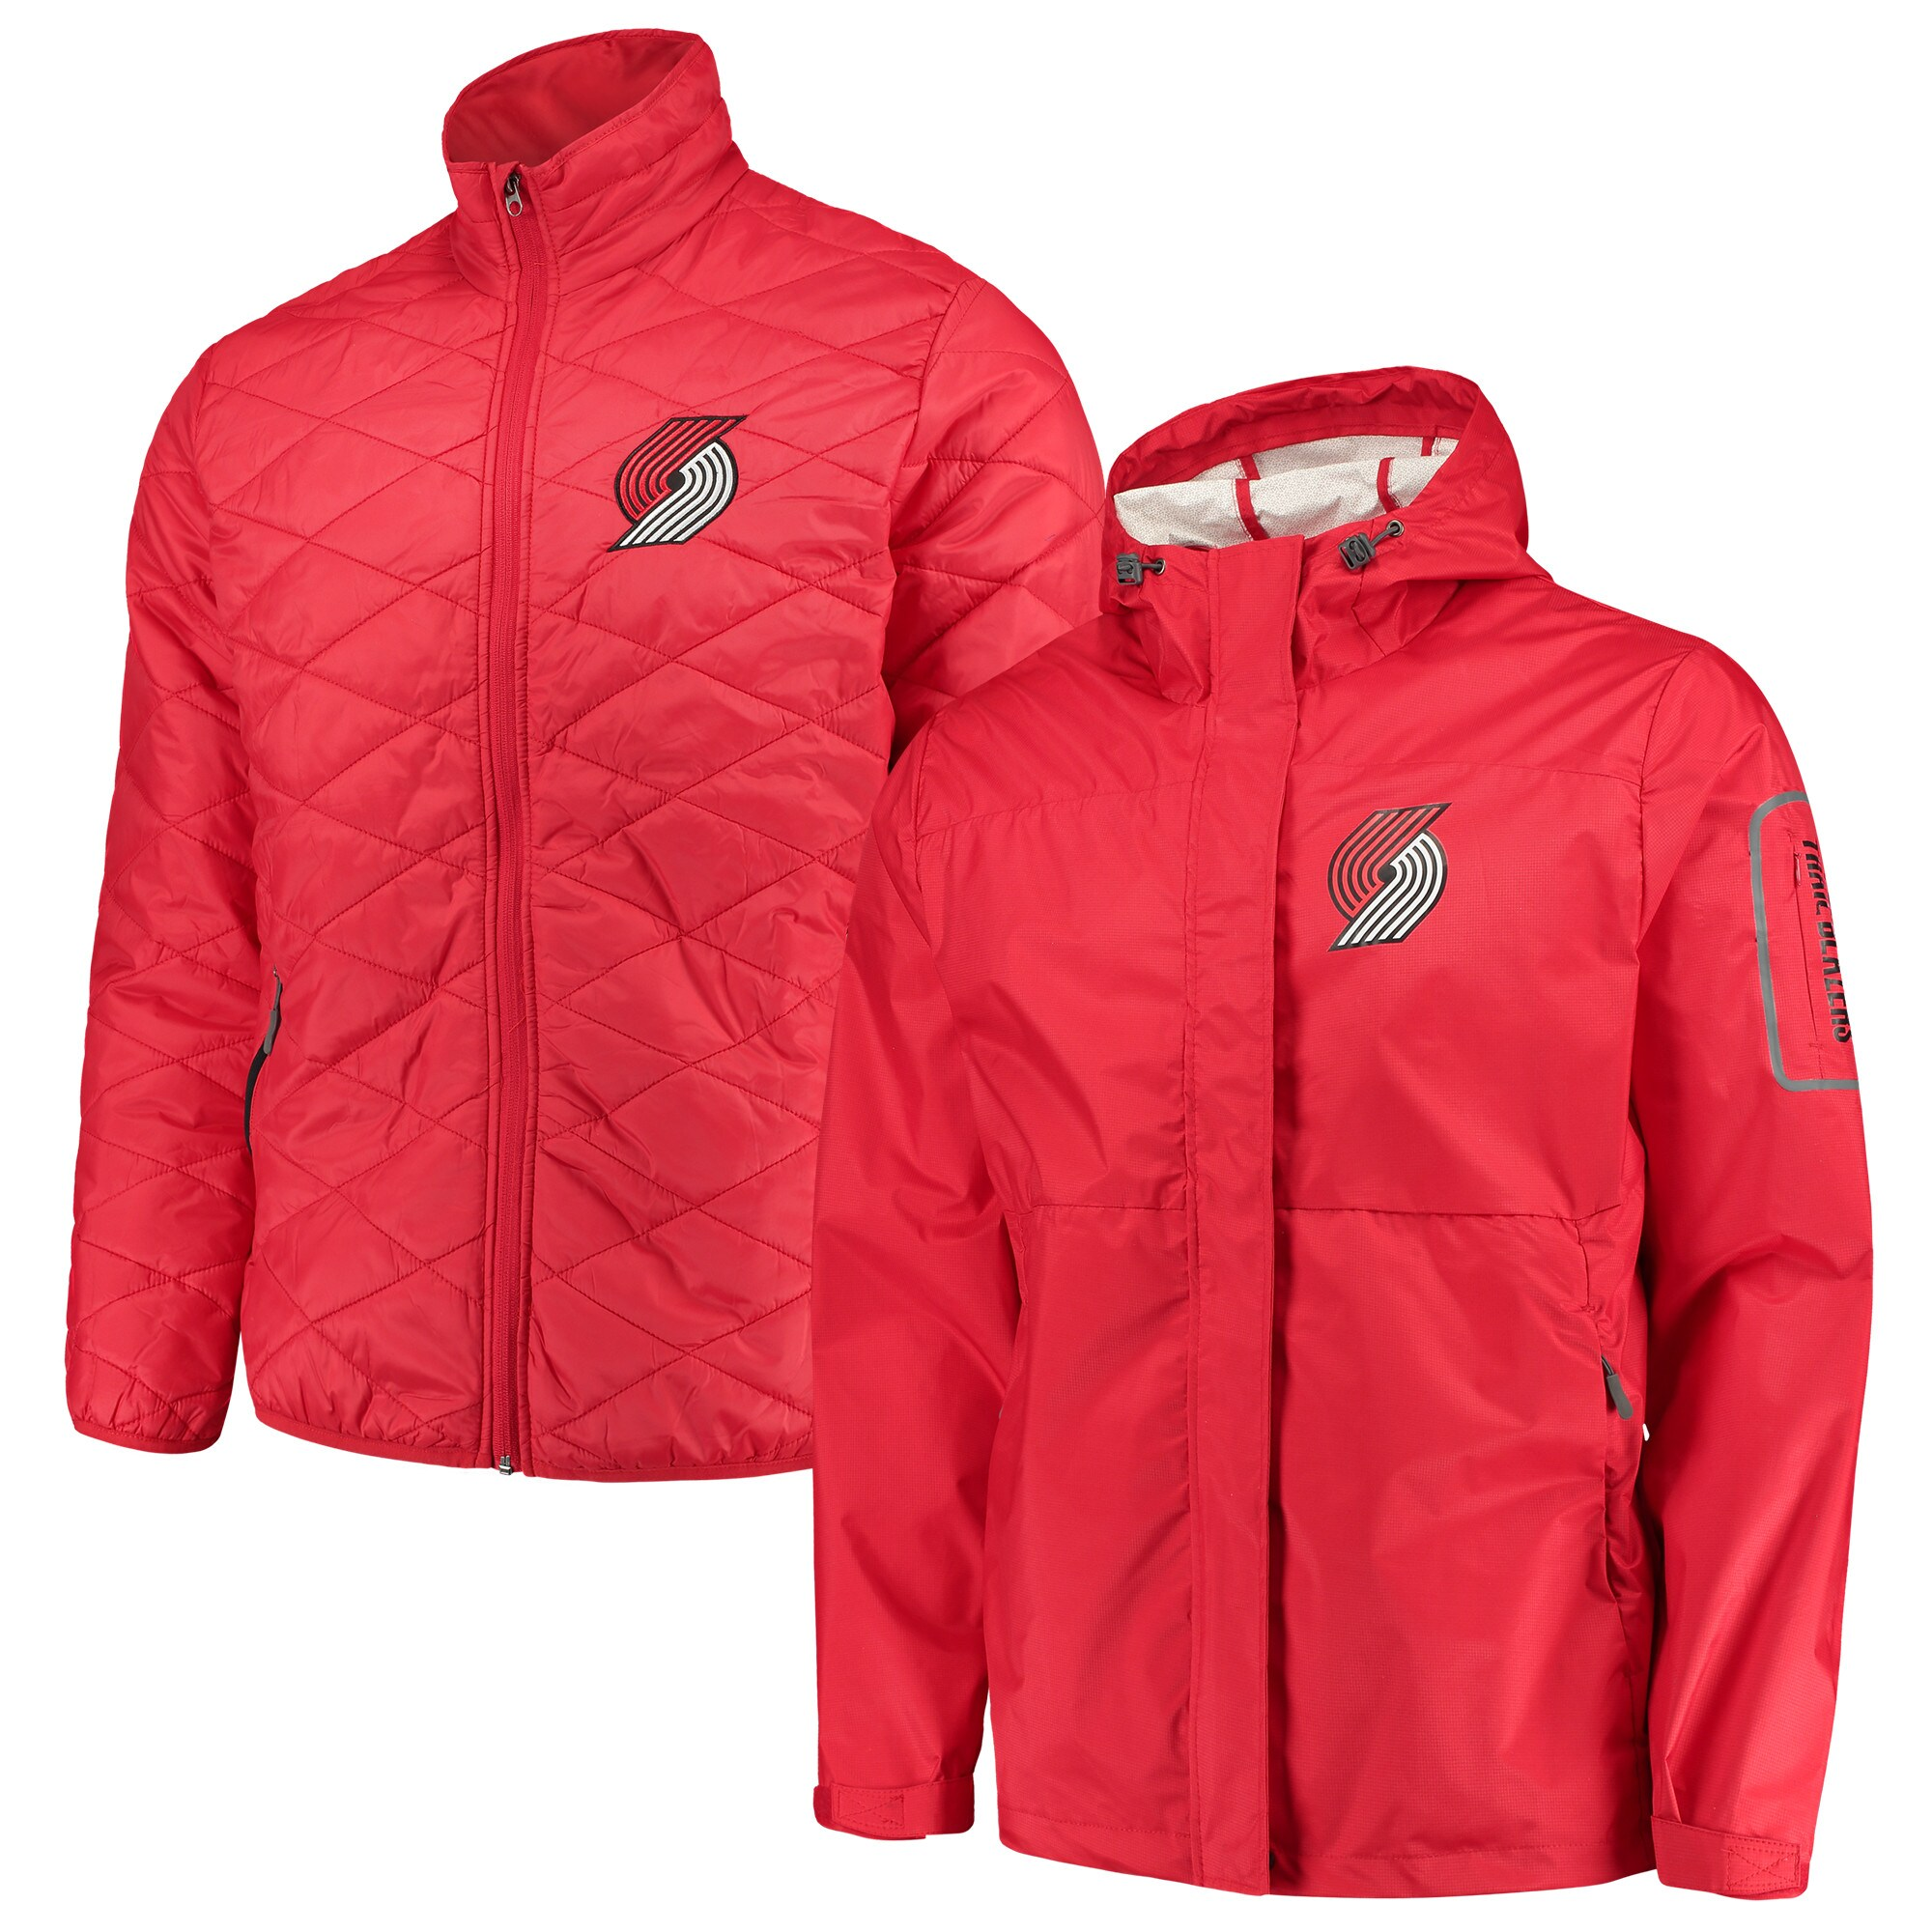 Portland Trail Blazers G-III Sports by Carl Banks Acclimation 3-in-1 Systems Full-Zip Jacket - Red